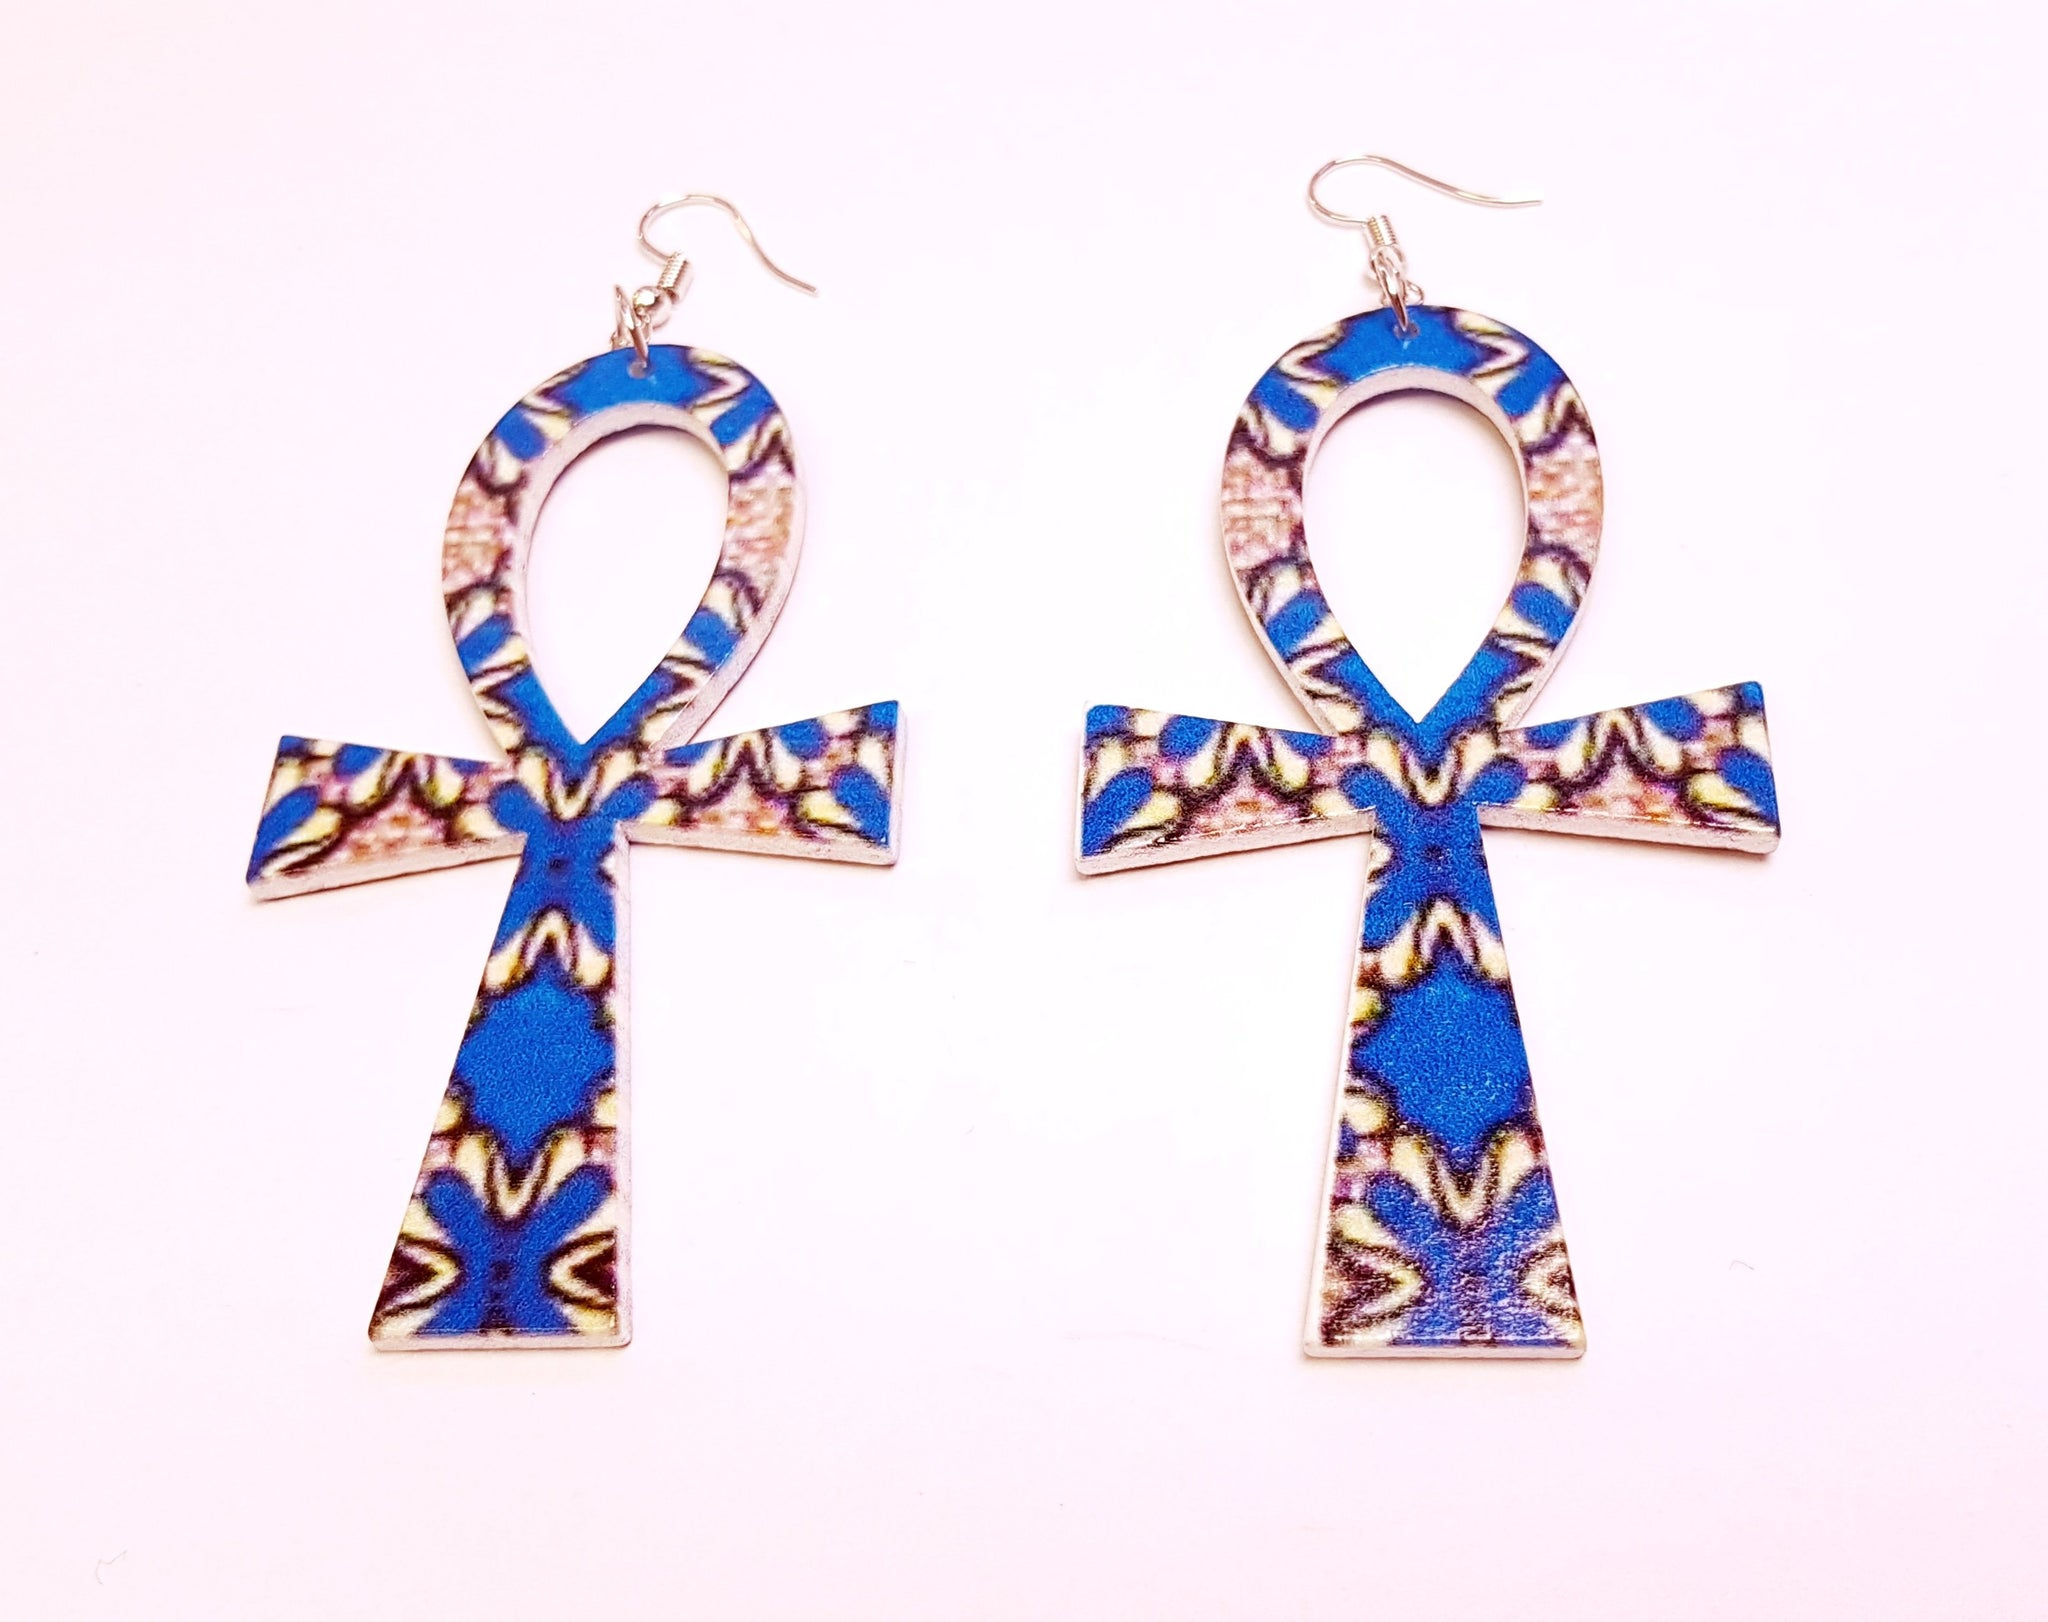 Ankh shaped wooden African Earrings with Print - Blue Shapes